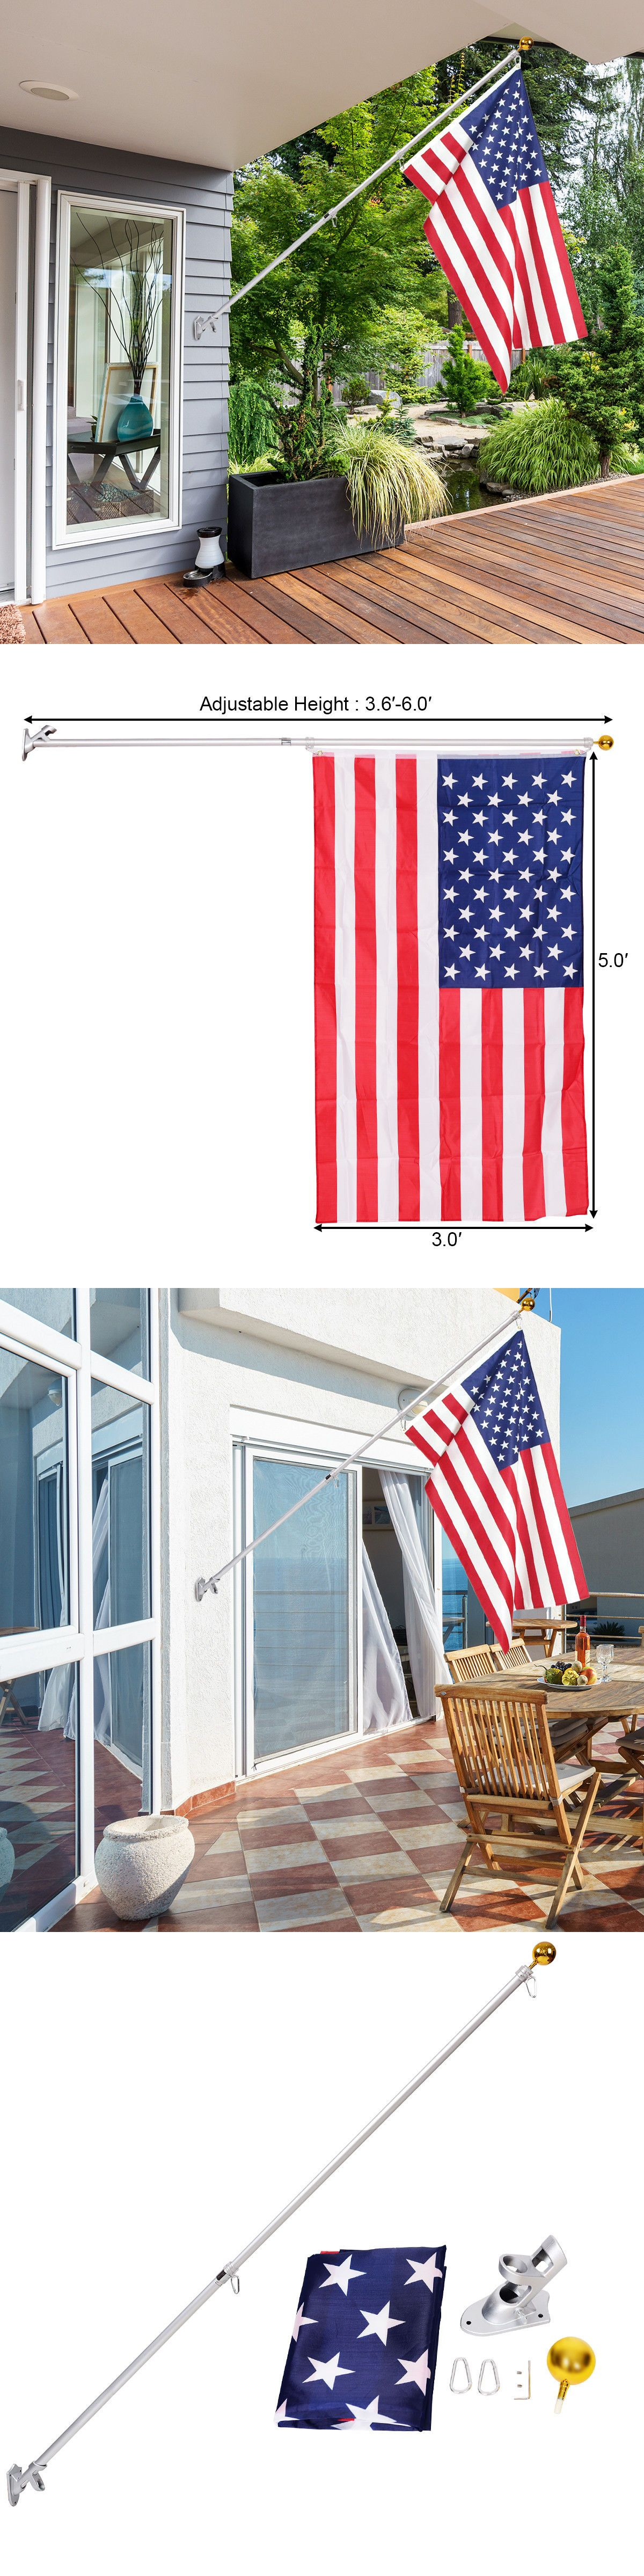 Flag Poles And Parts 43536 American Flag Pole Kit Wall Mount 6 Ft Spinning 3 X5 Us Flag Gold Ball Aluminum Buy It Now Only Flag Pole Kits Flag Pole Flag